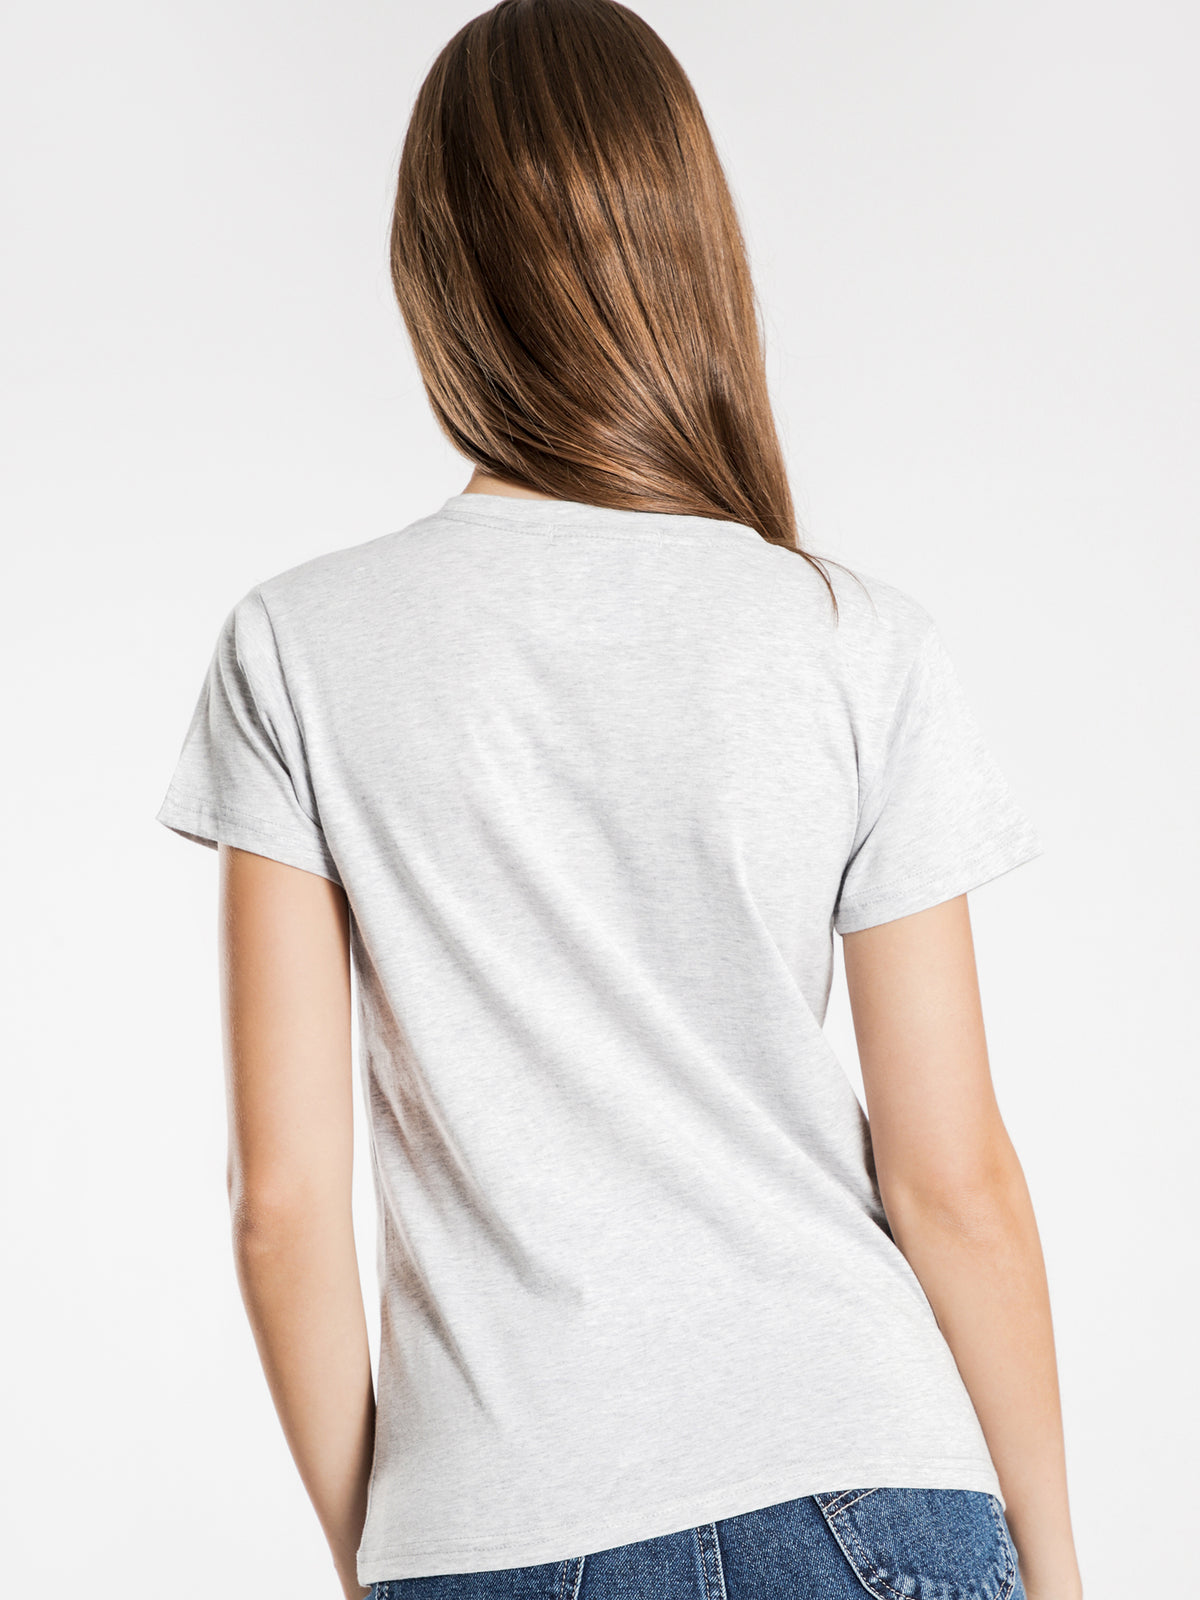 Harper Basic Crew Neck T-Shirt in Grey